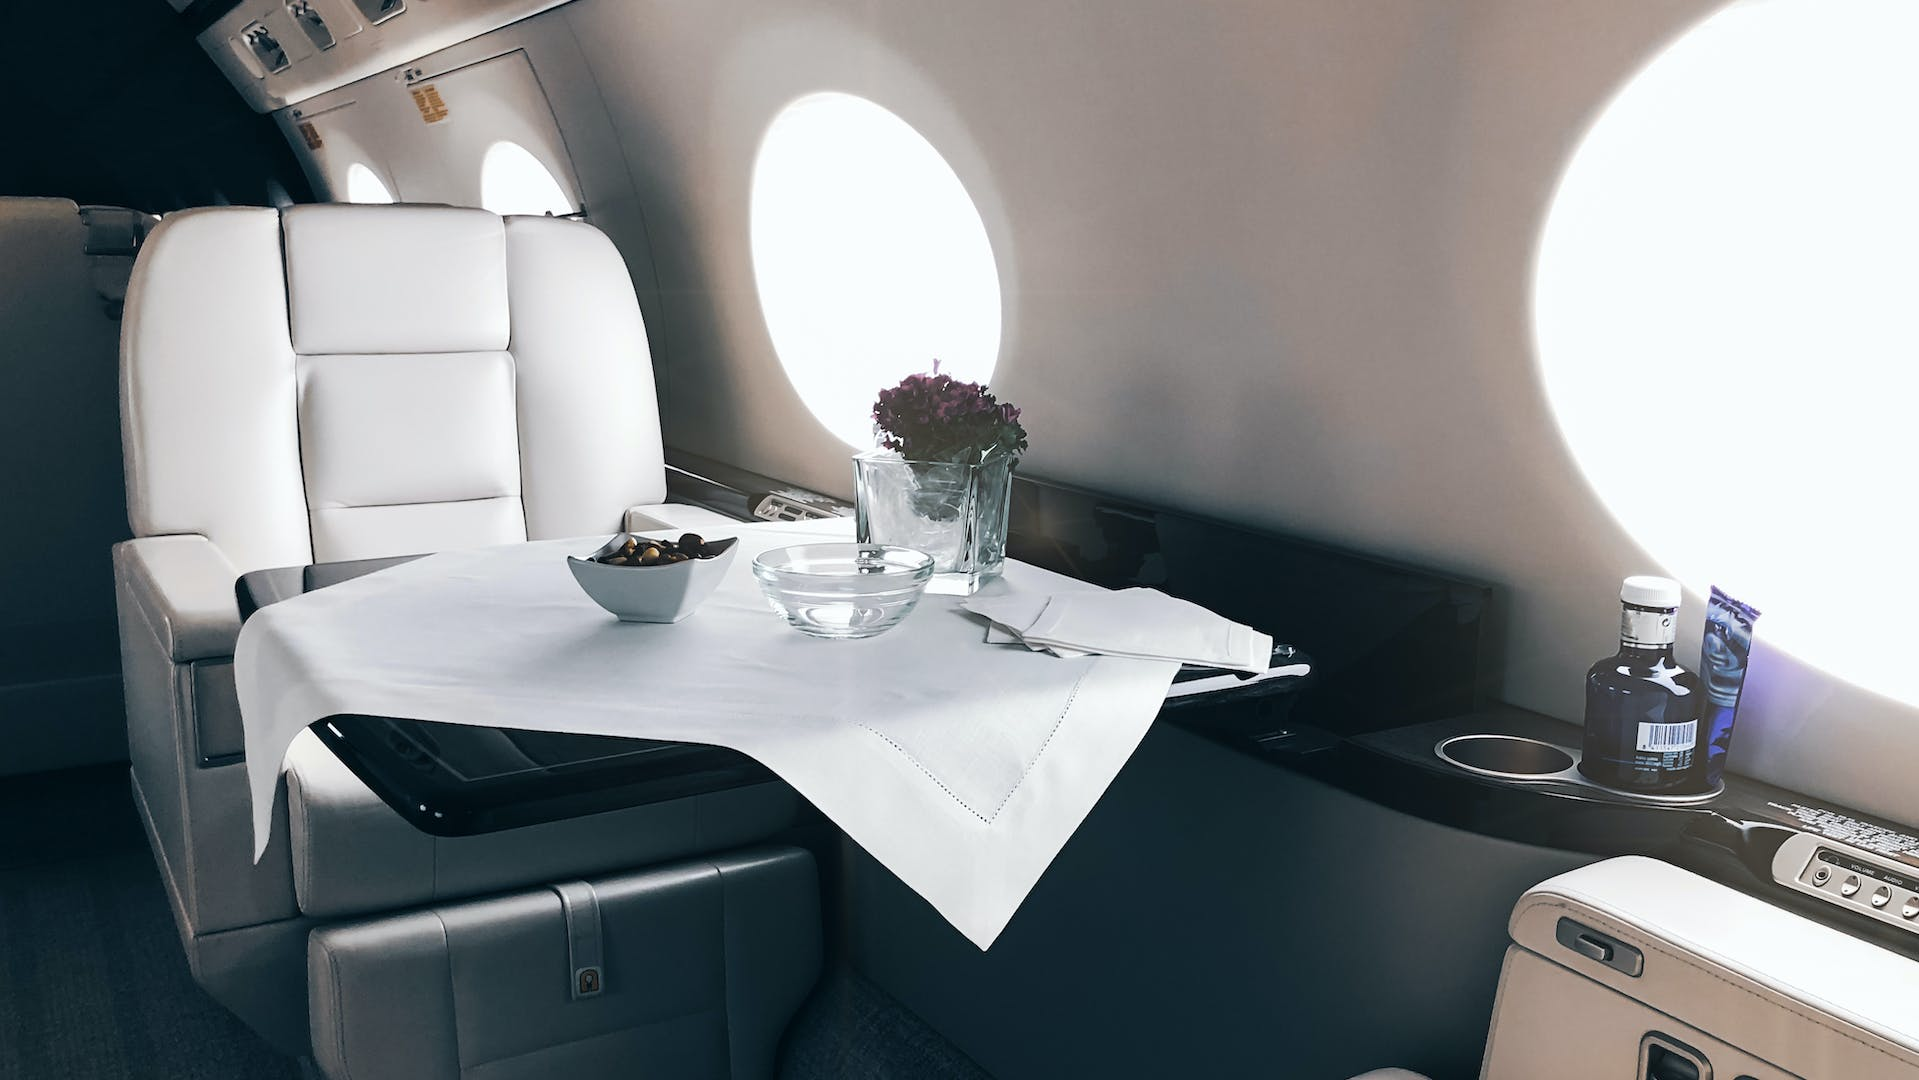 Get exactly what you need inside your private charter plane with 100% tailor-made layouts and amenities.